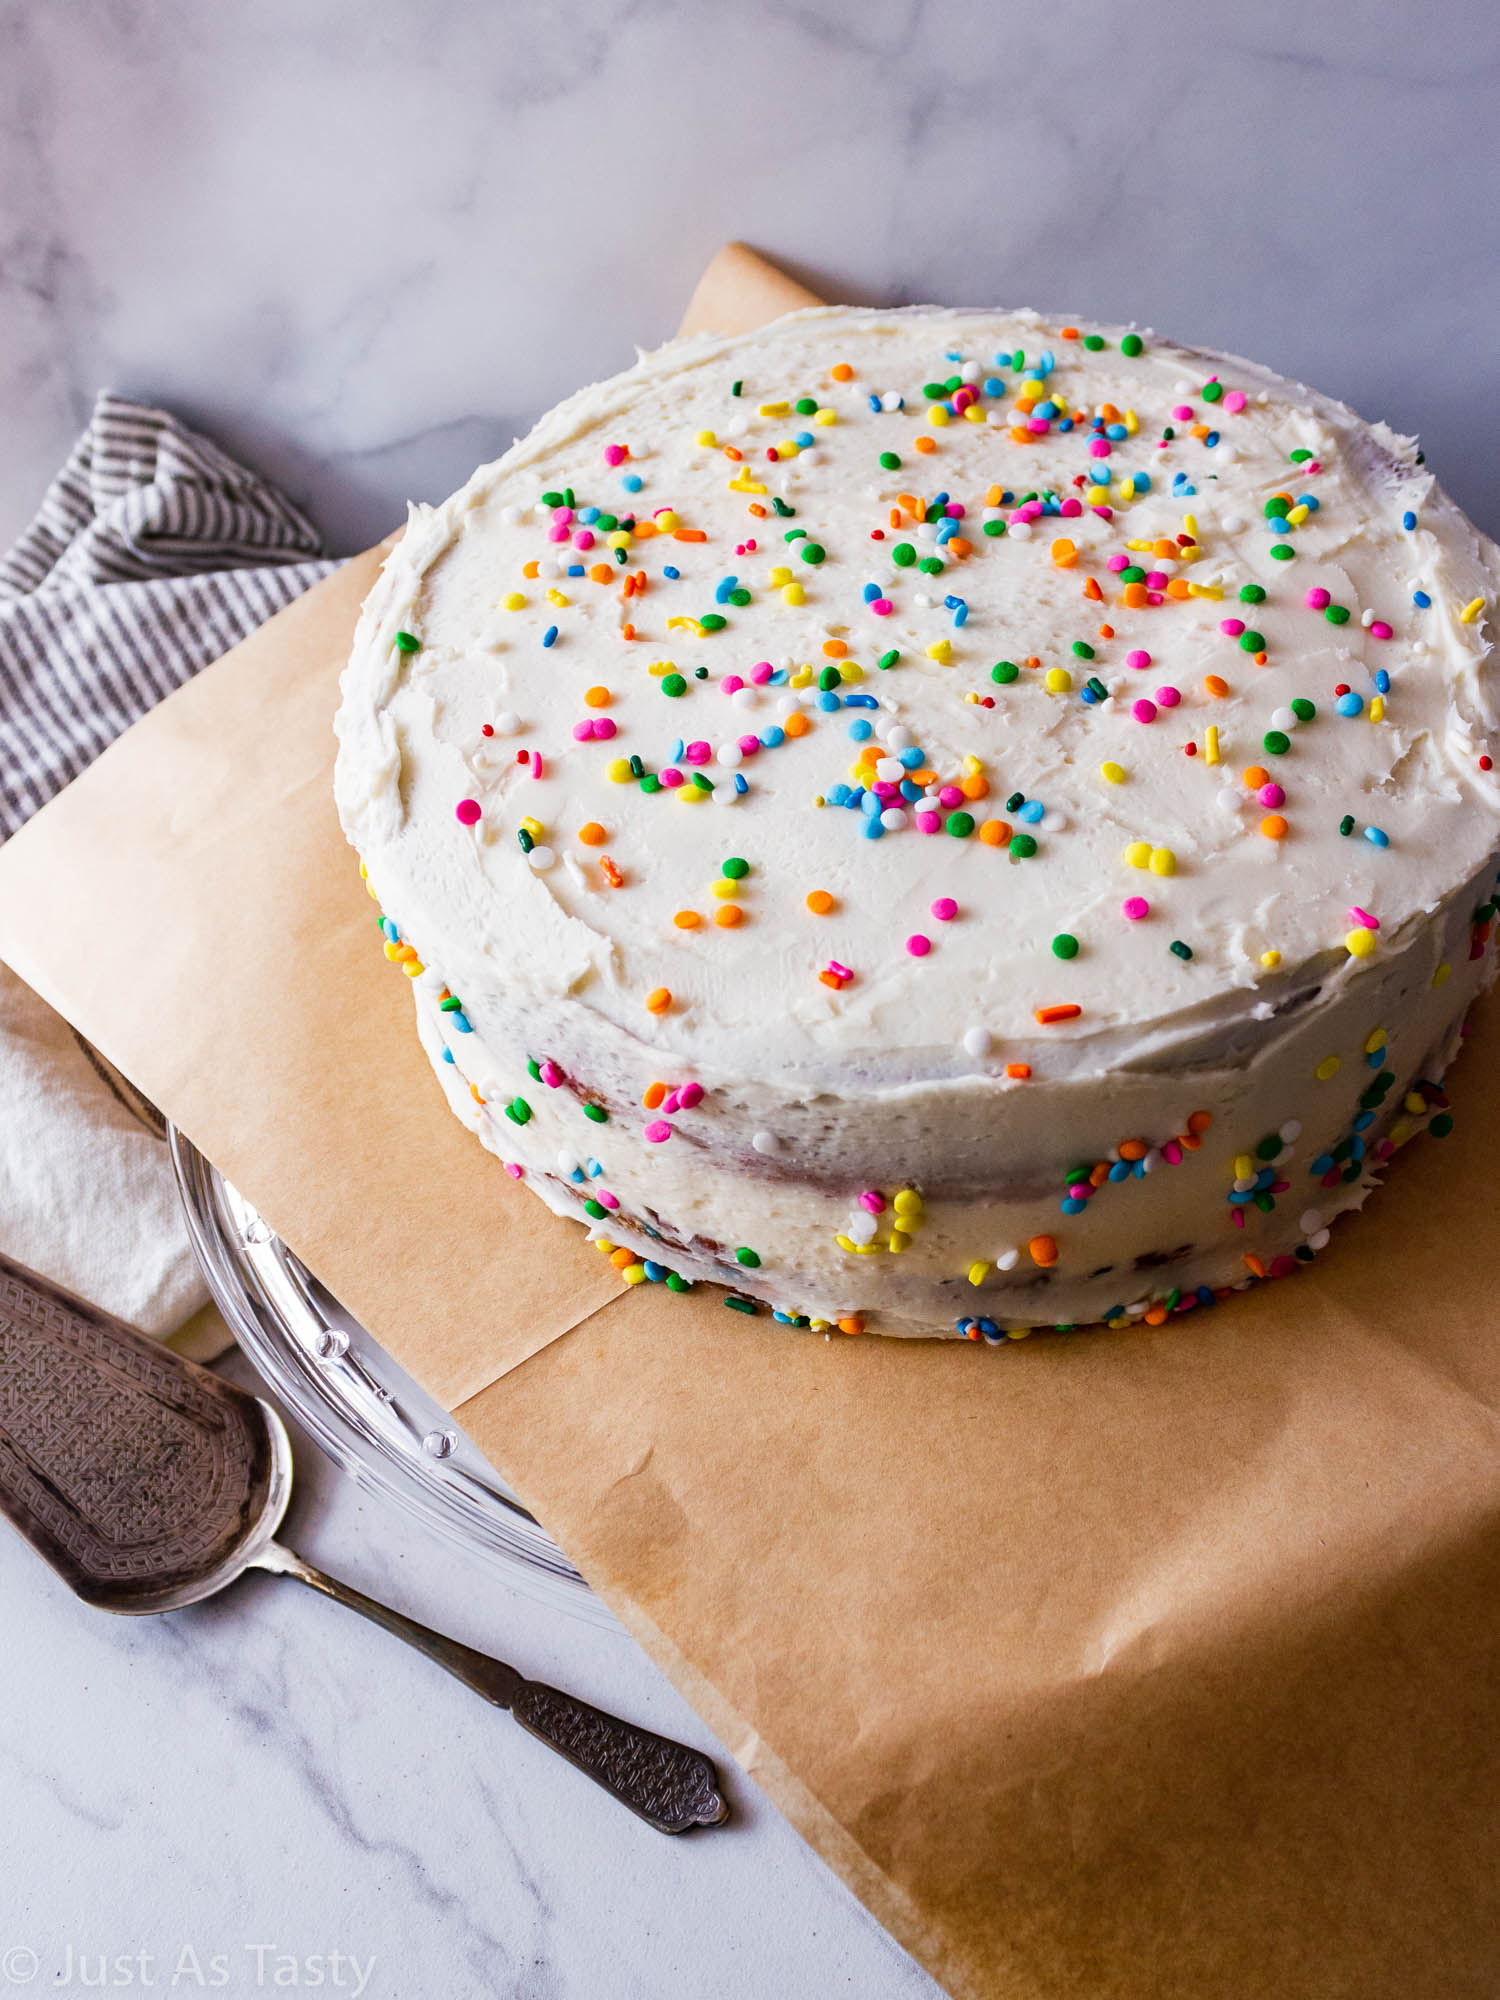 Frosted gluten free funfetti cake on a cake stand.